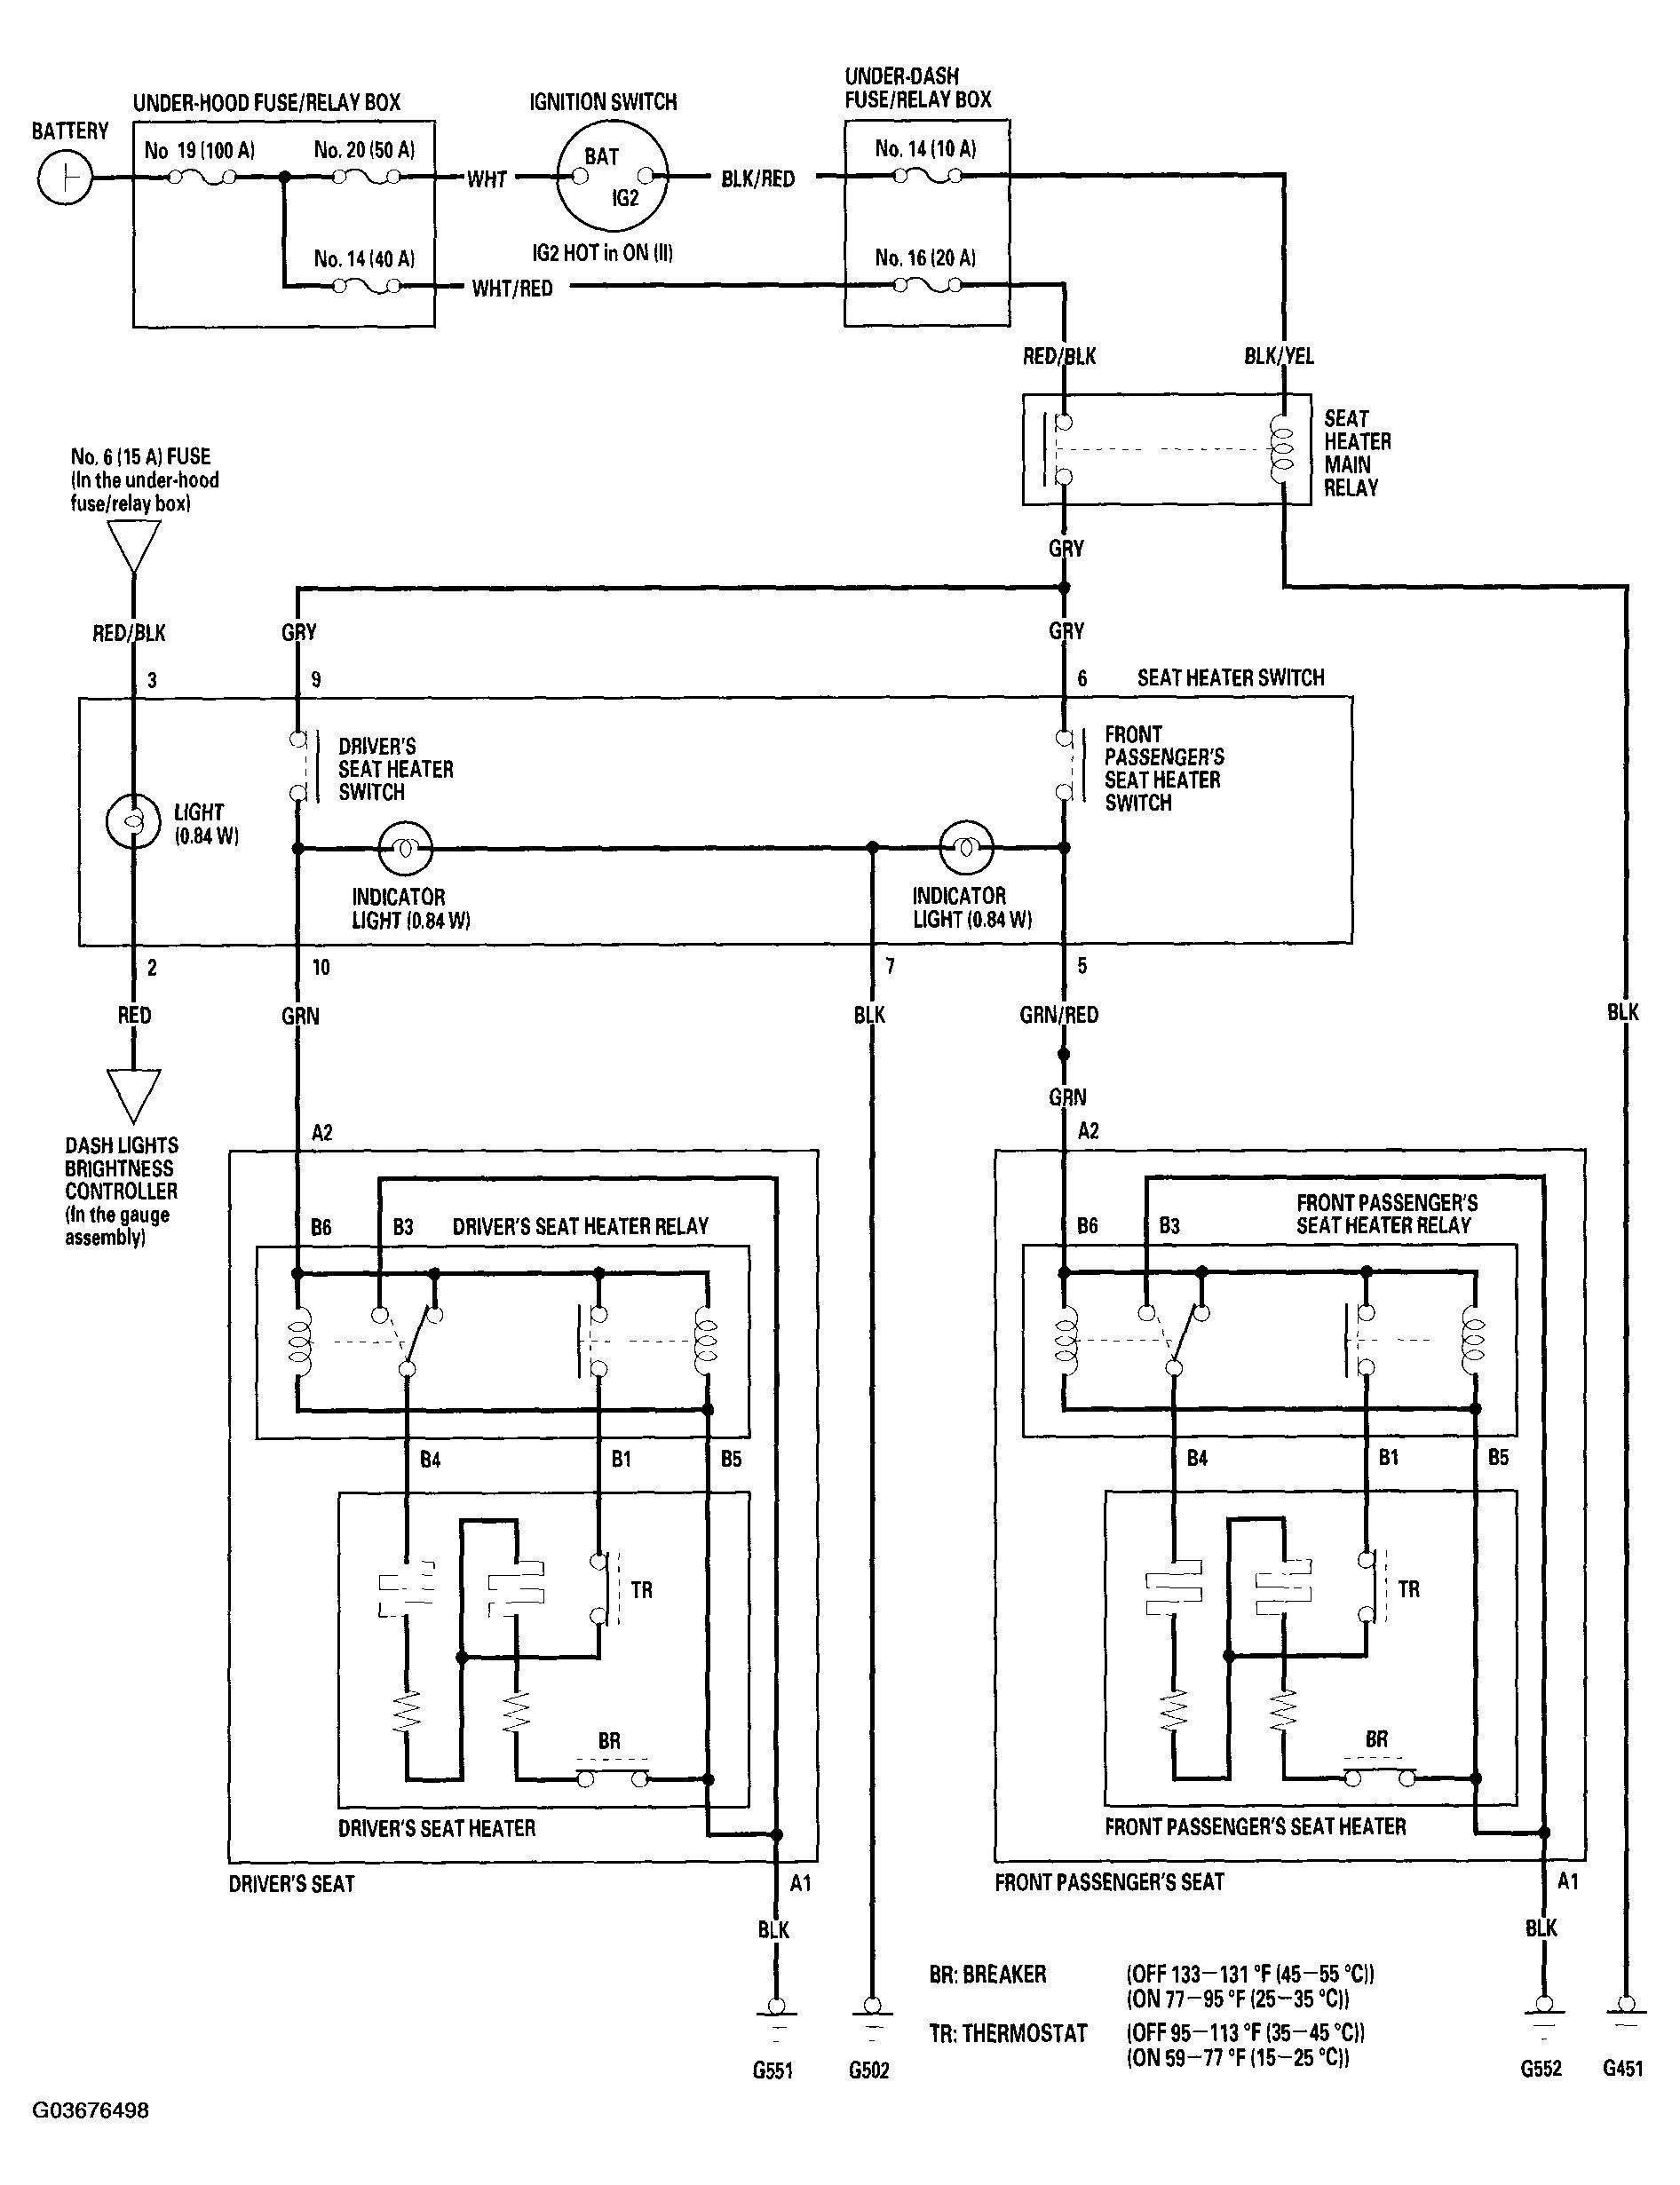 2001 Honda S2000 Engine Diagram